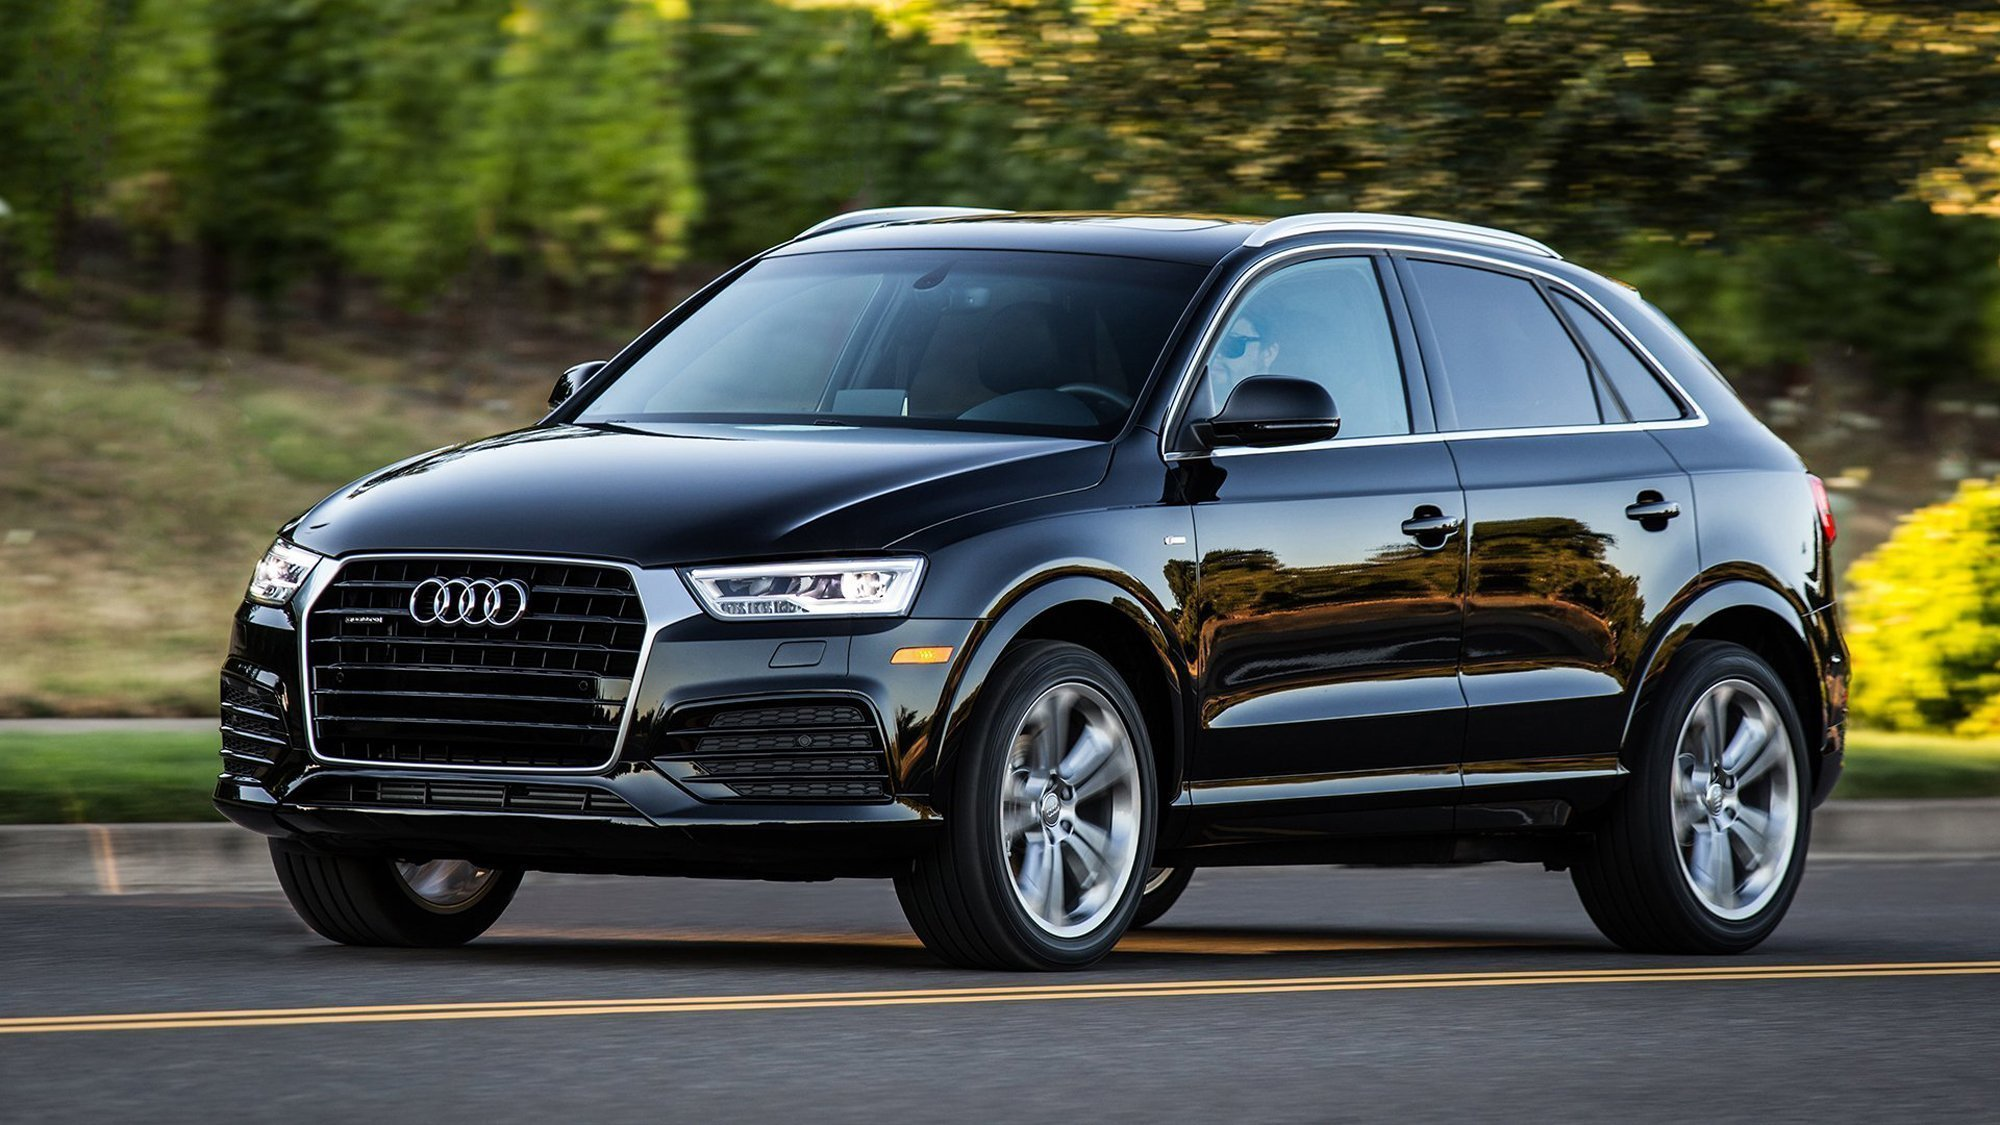 2016 q3 suv delivers affordable turbocharged audi prestige - the san